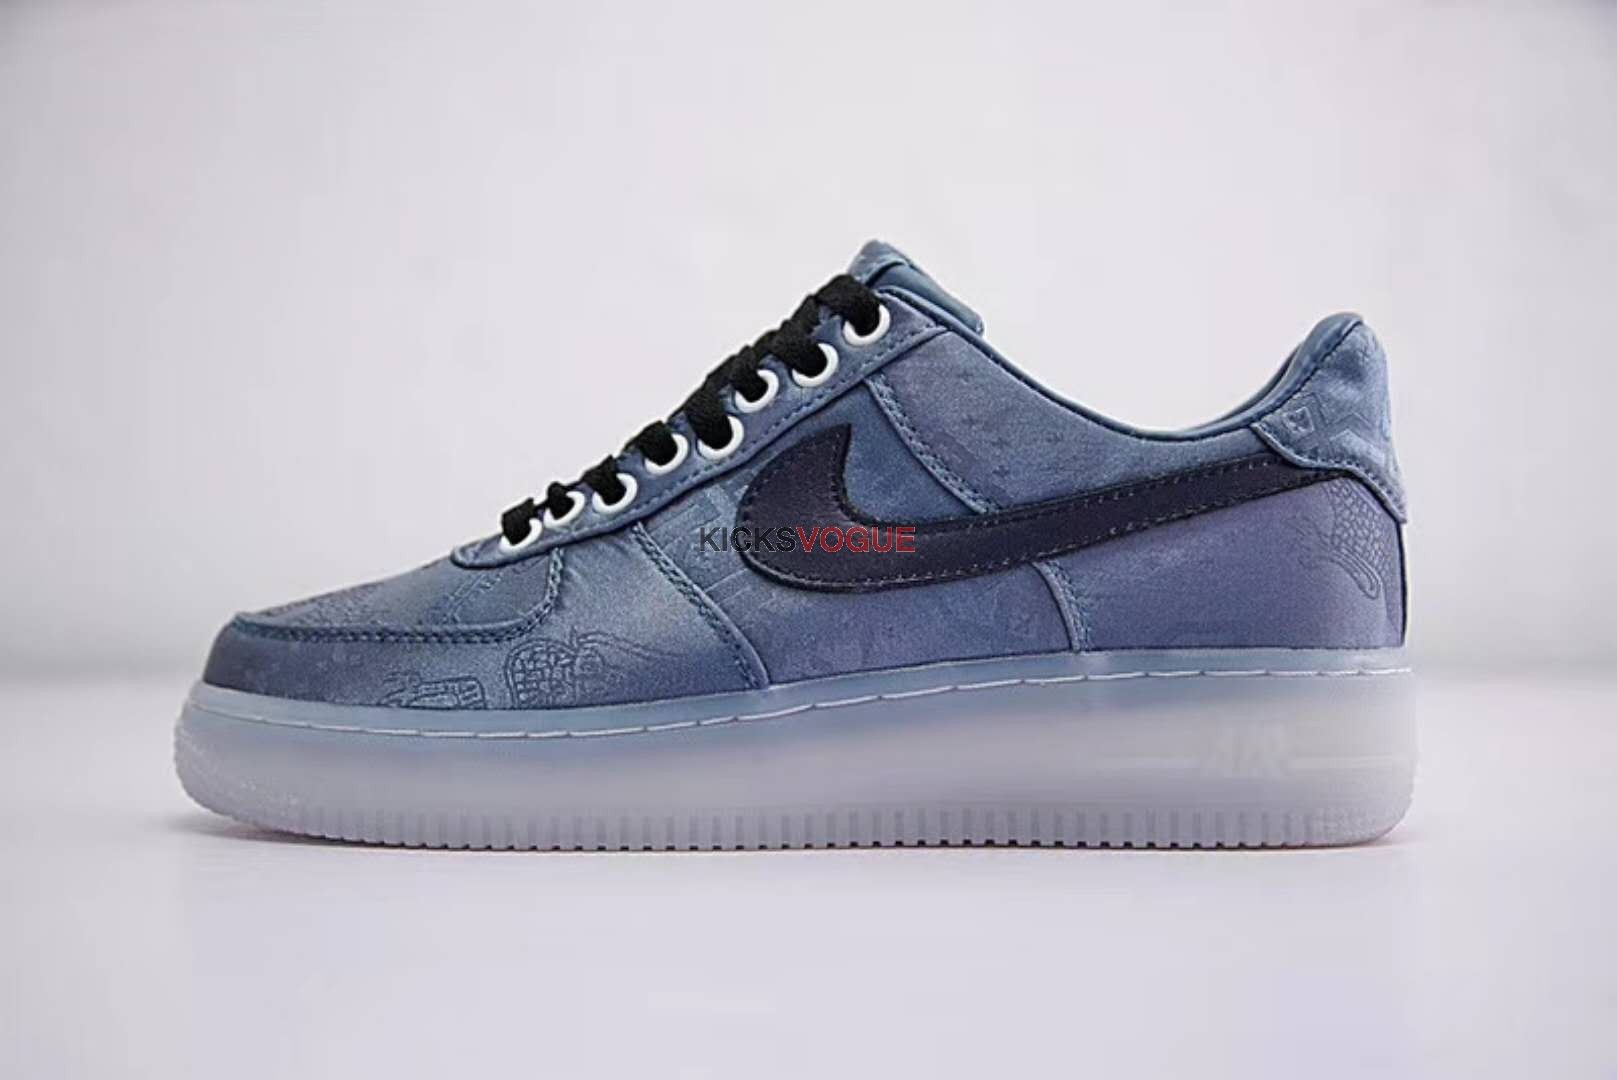 Custom Clot x Nike Air force 1 Silk Blue Indigo Dyed | Sapatos